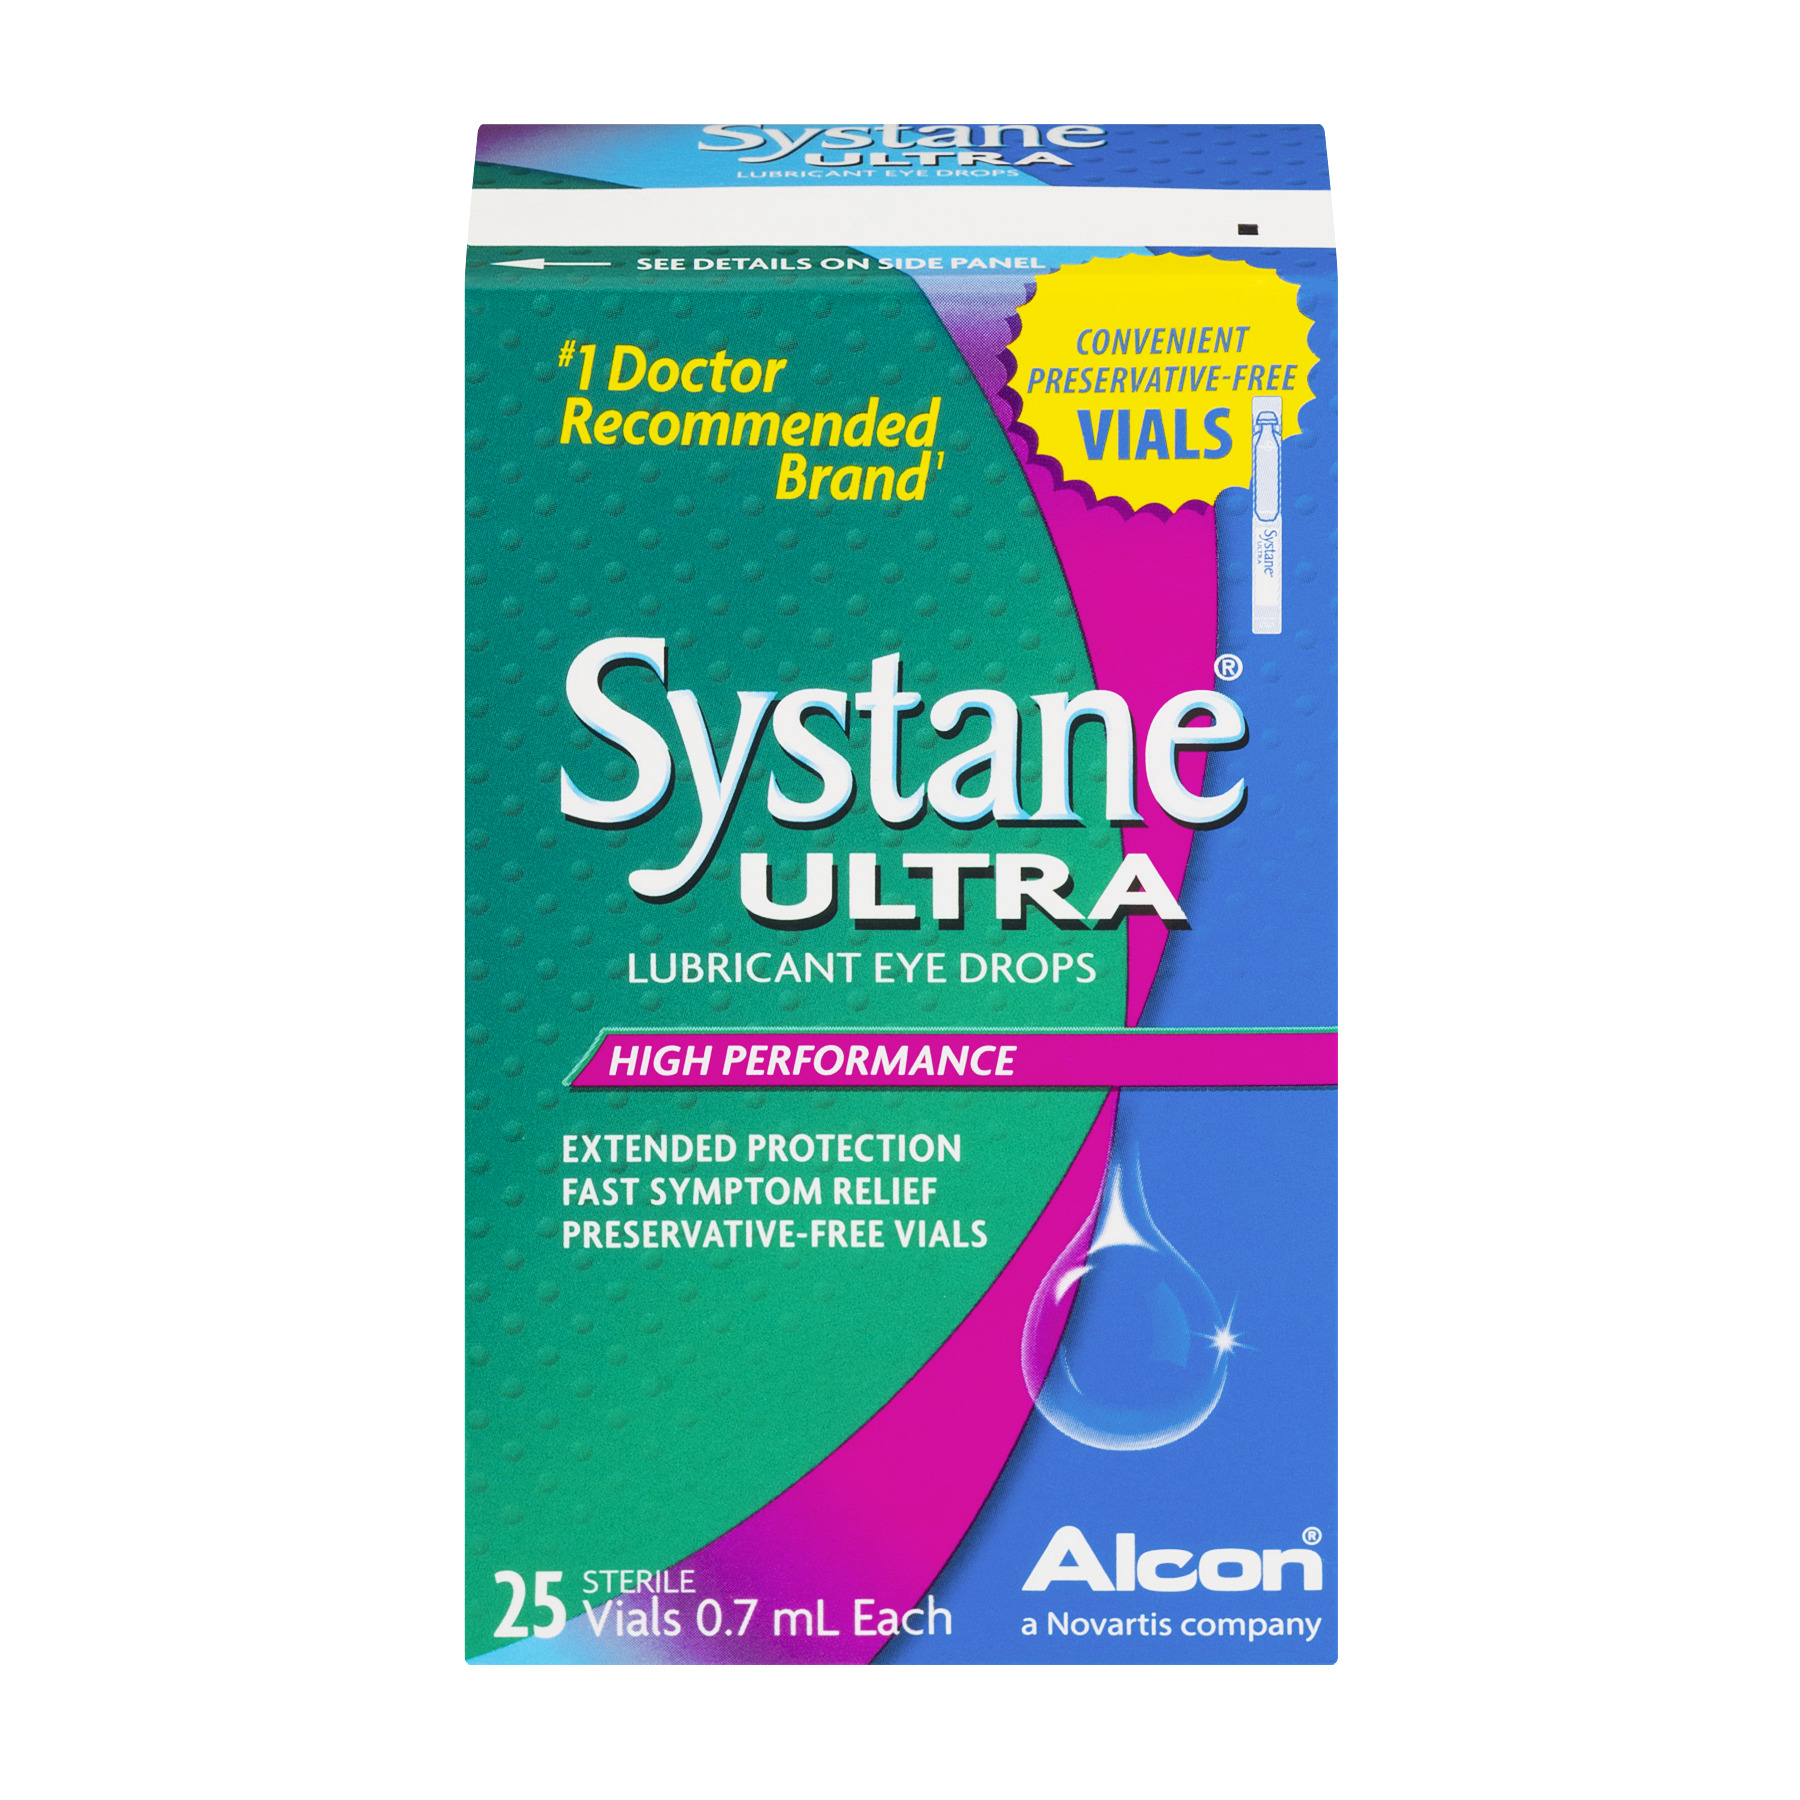 Systane Ultra Lubricant Eye Drops High Performance Vials - 25 CT25.0 CT - Walmart.com | Tuggl